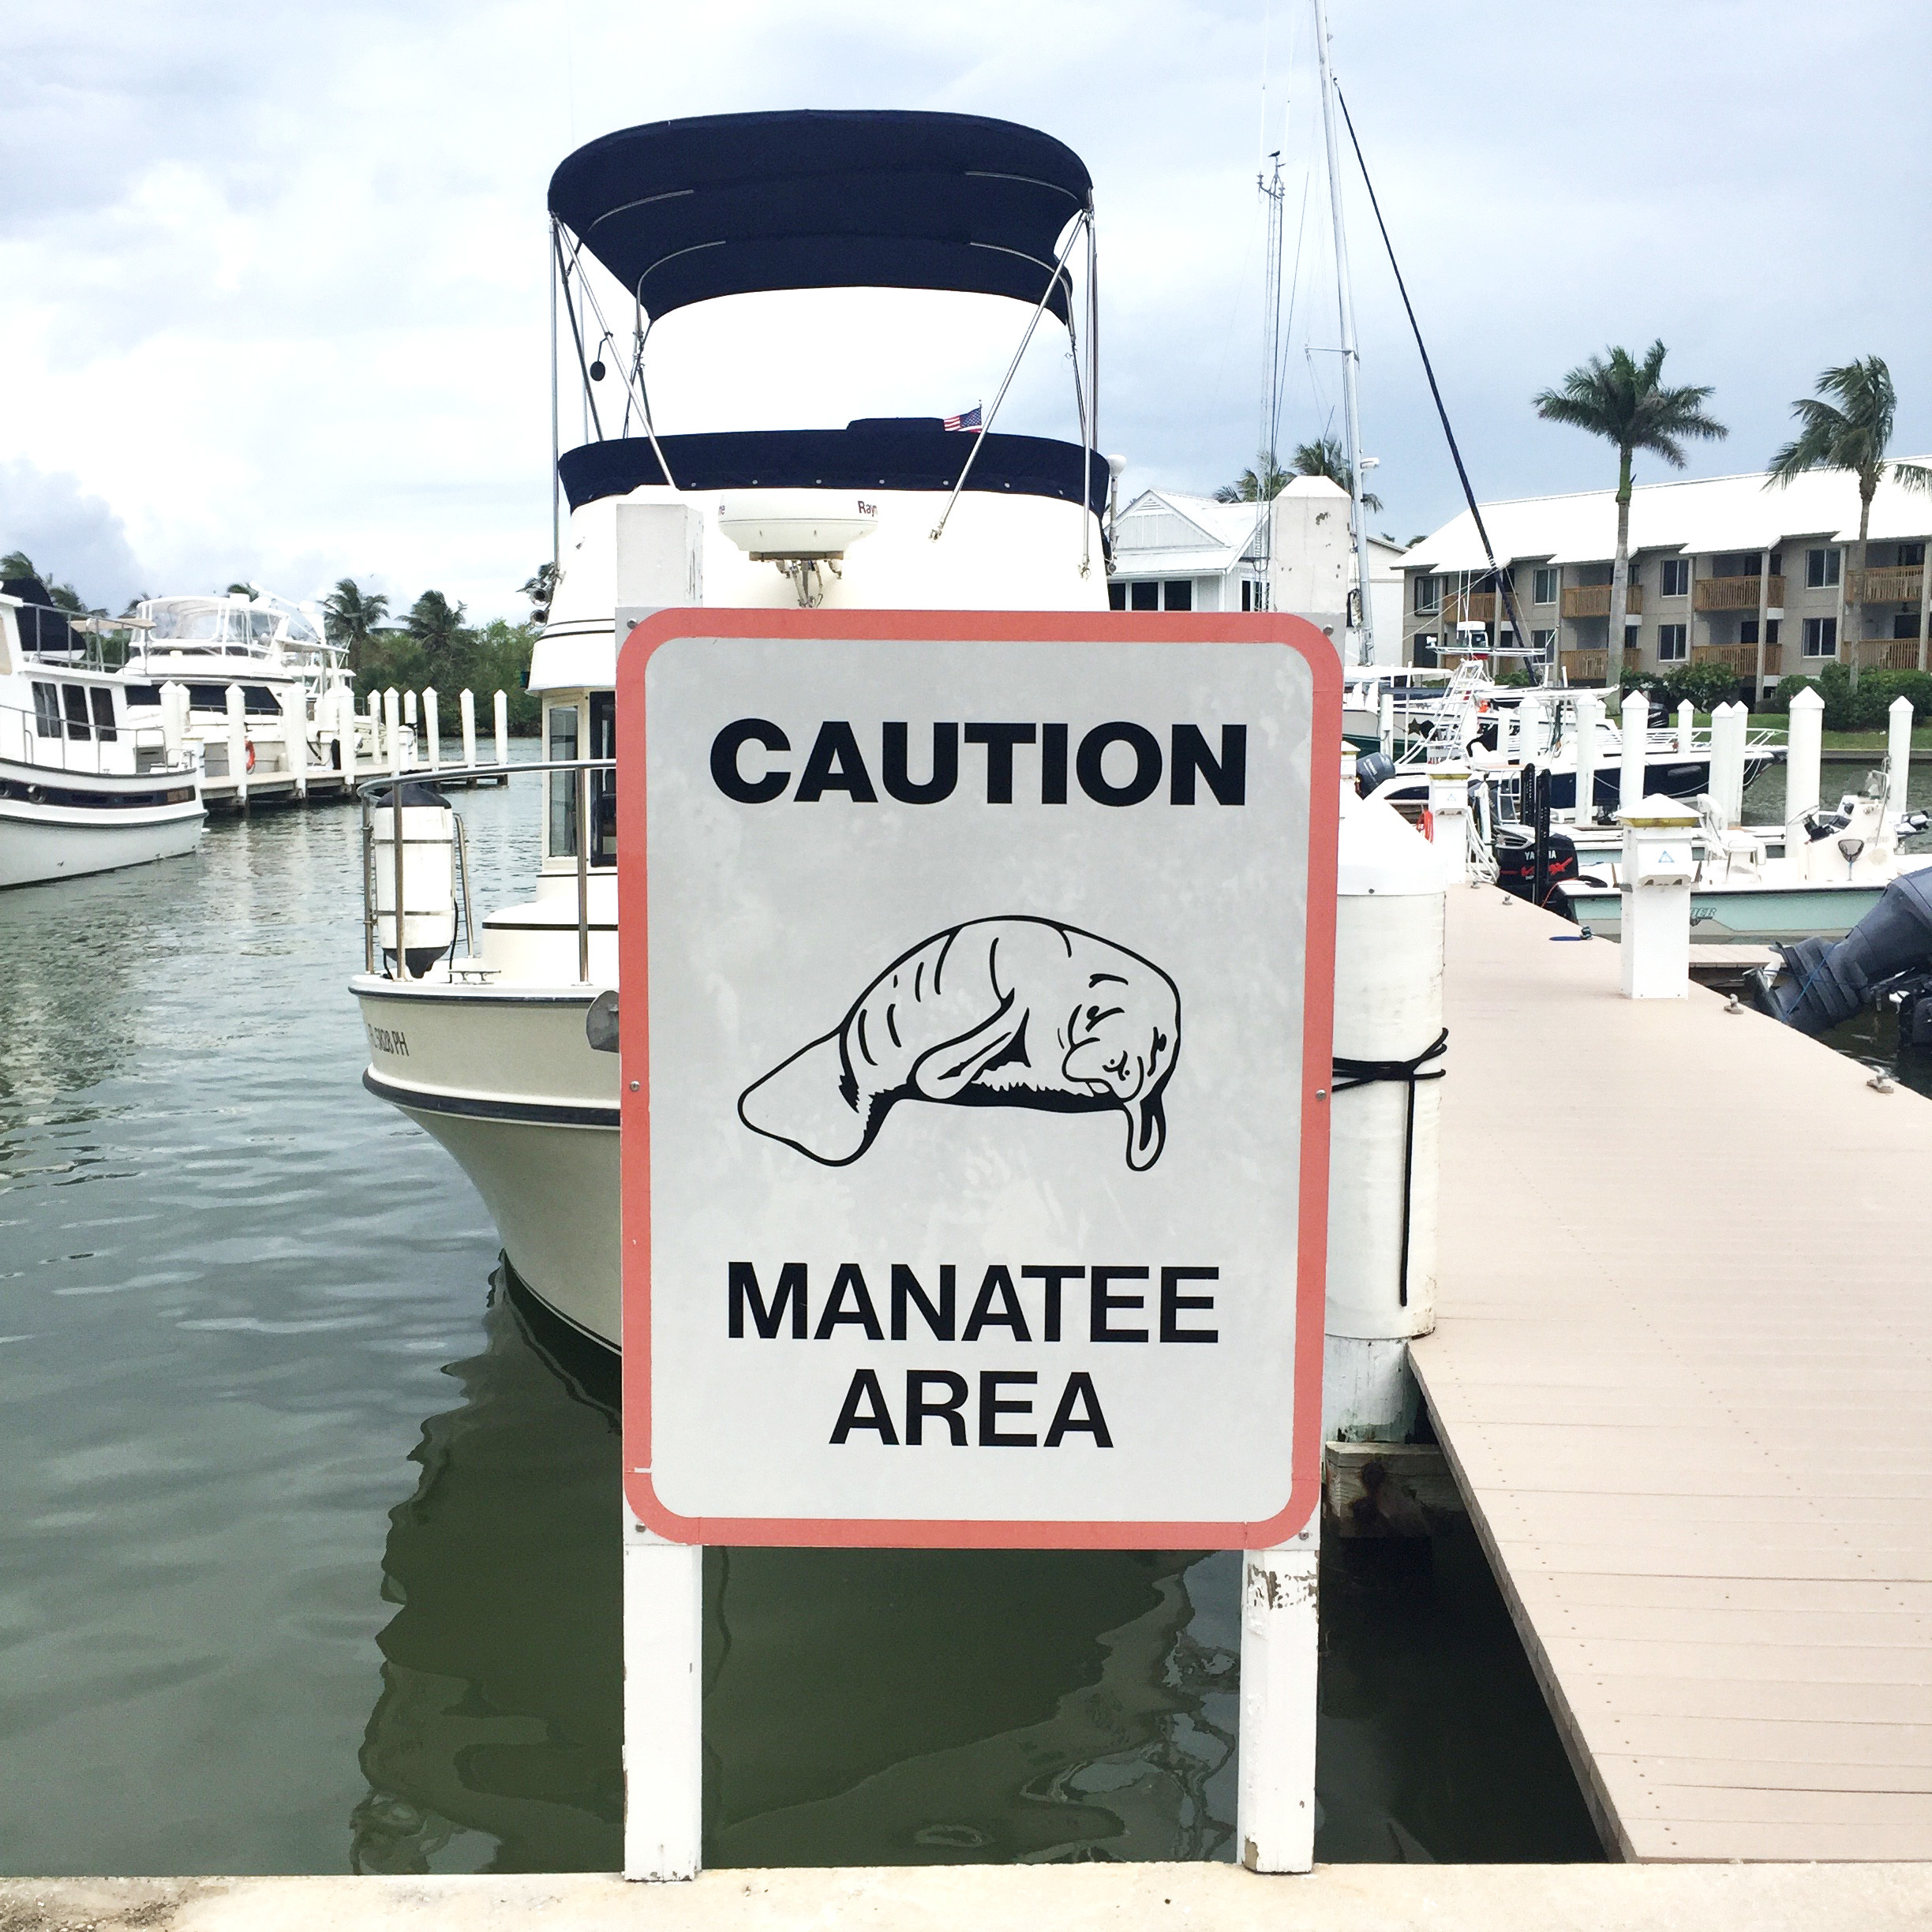 1-OPTIONAL-MANATEE-SIGN-PHOTO-HERE-Caption-Manatee-sightings-are-common-at-South-Seas-Island-Resorts-marina.jpg?mtime=20180609213115#asset:102094